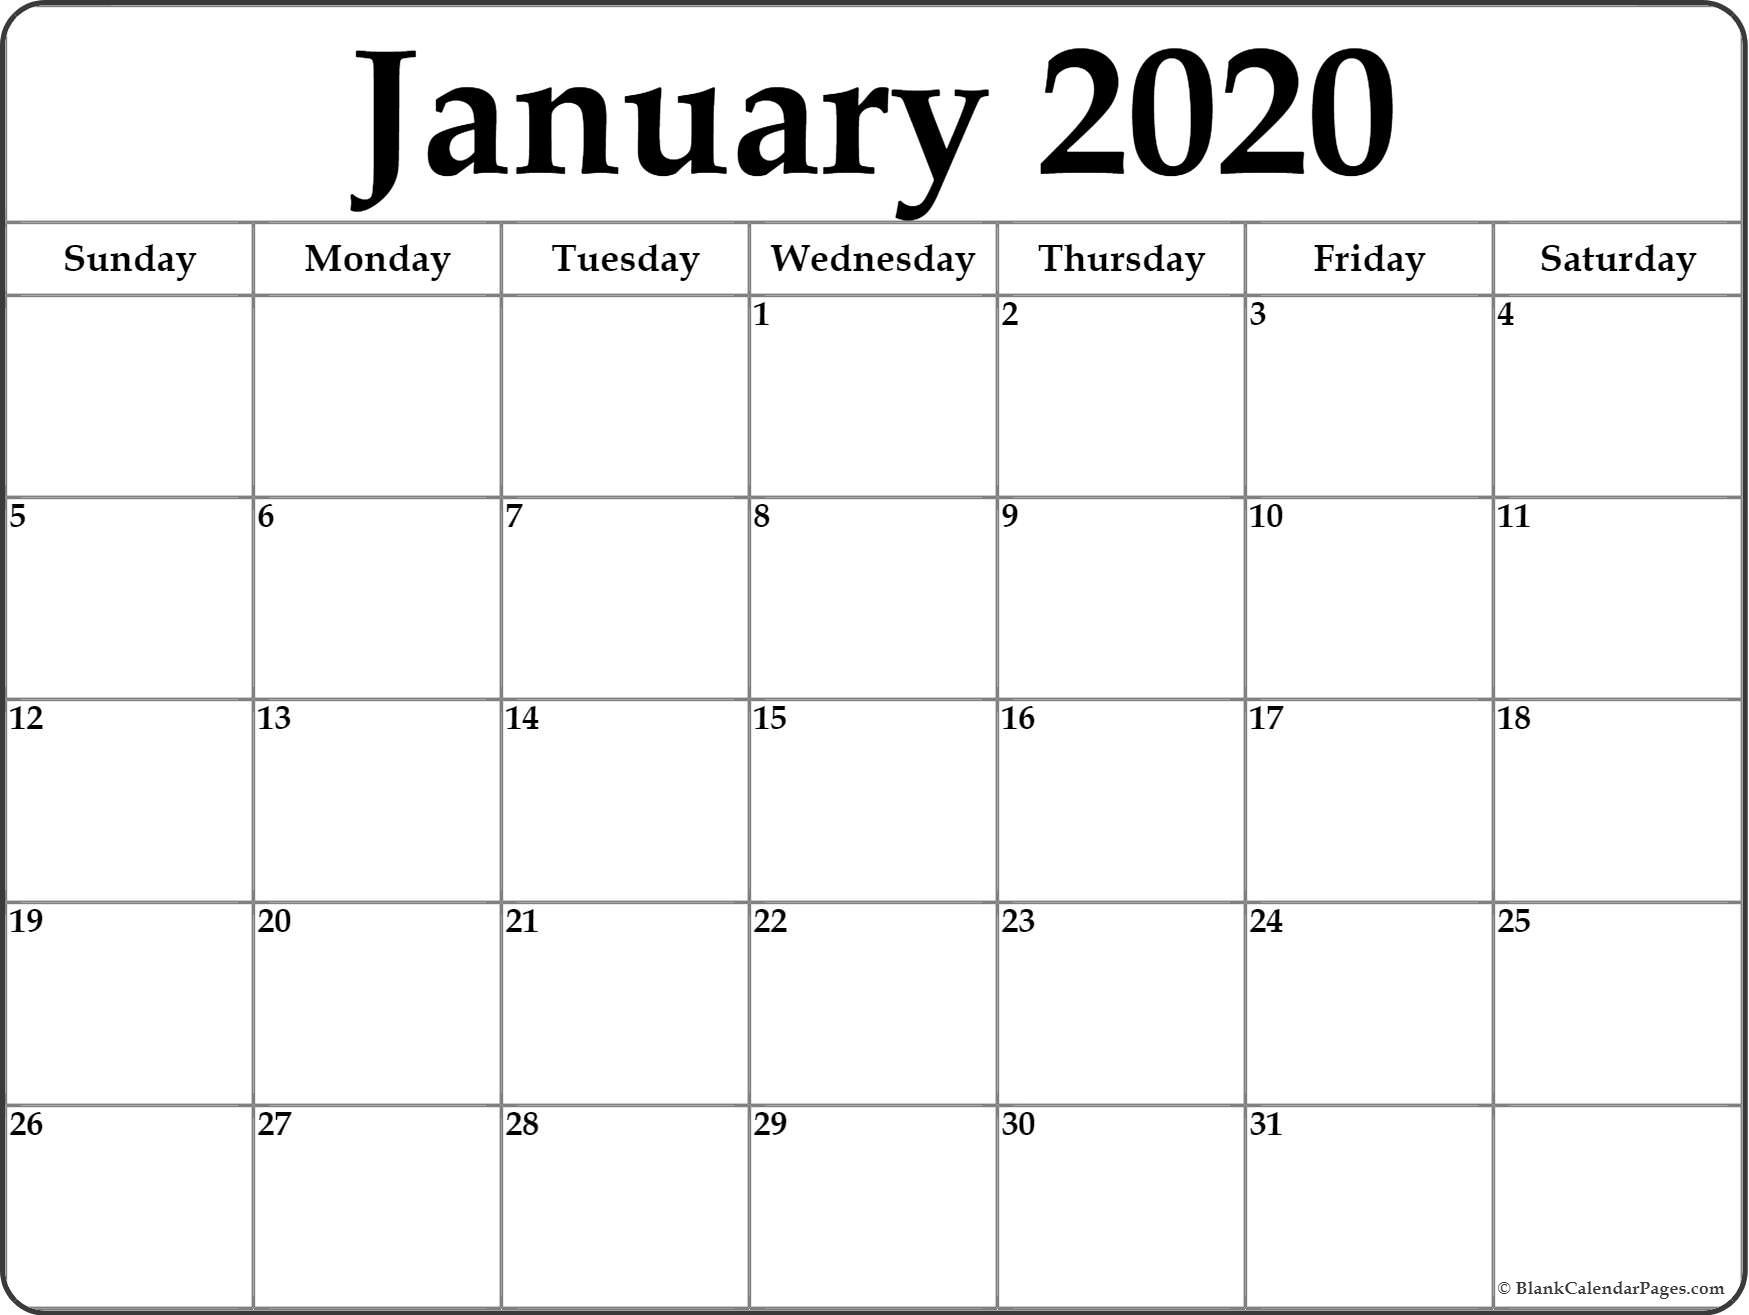 Calendar Template Monthly 2020 - Togo.wpart.co